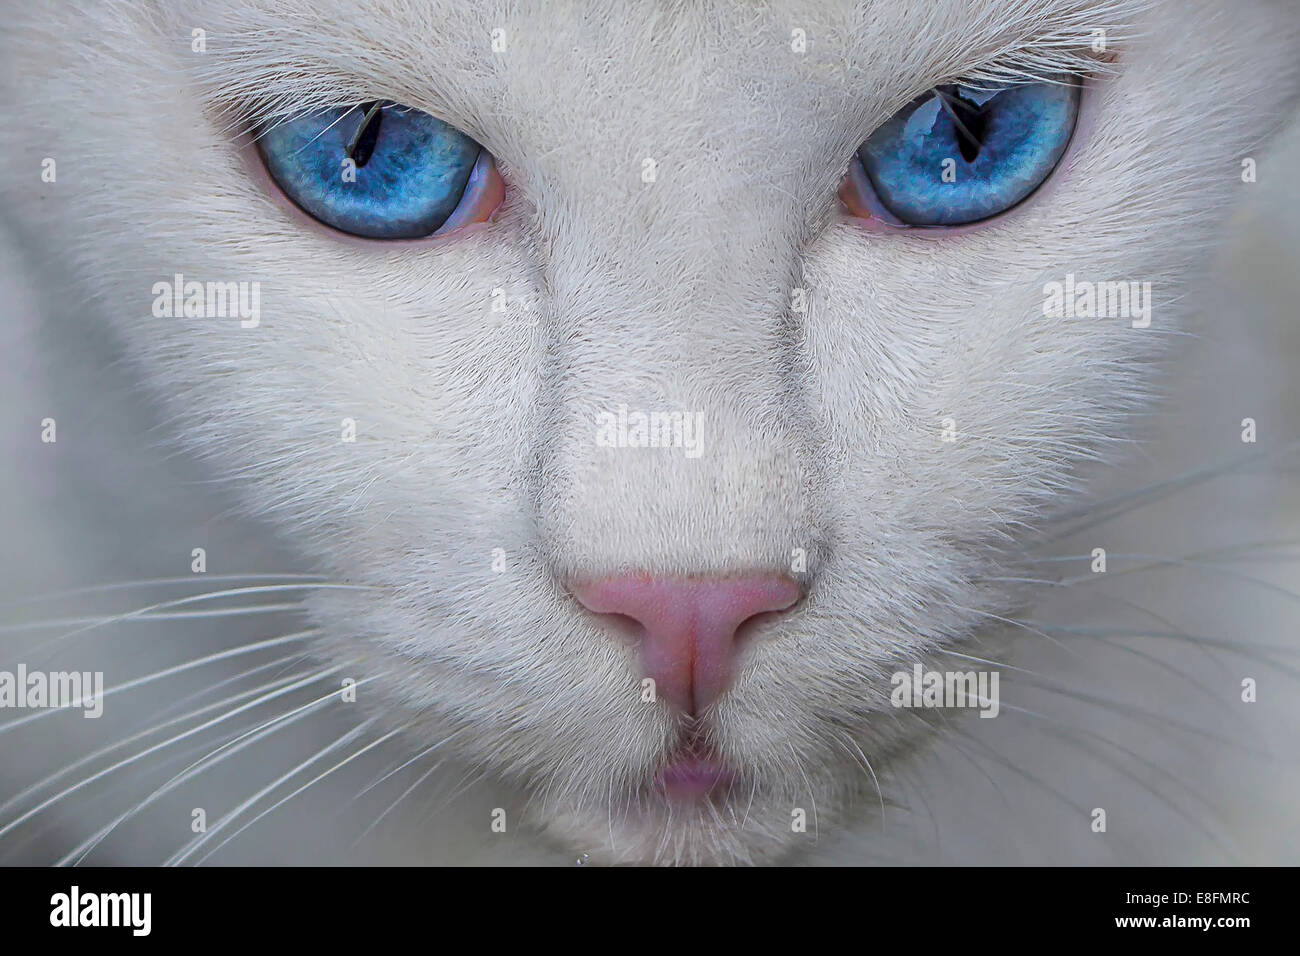 Portrait of a white cat with blue eyes - Stock Image